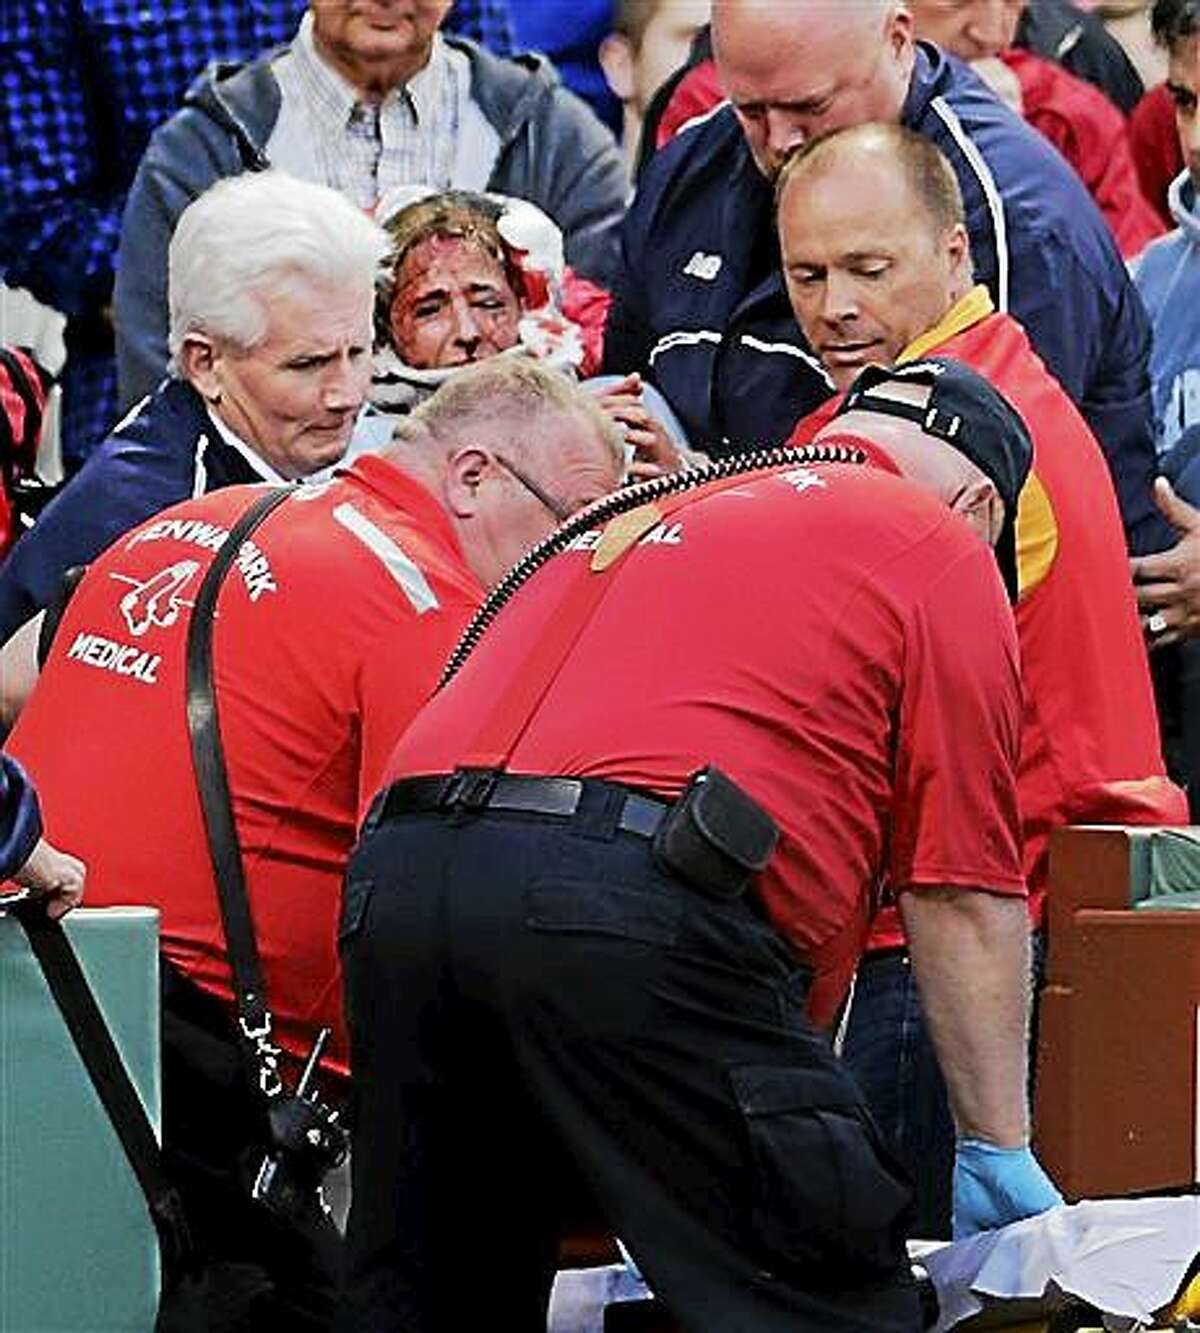 A fan, who was accidentally hit in the head with a broken bat by Oakland Athletics' Brett Lawrie, is helped from the stands during a baseball game against the Boston Red Sox at Fenway Park in Boston, Friday, June 5, 2015. The game was stopped while they wheeled her down the first base line. (AP Photo/Charles Krupa)